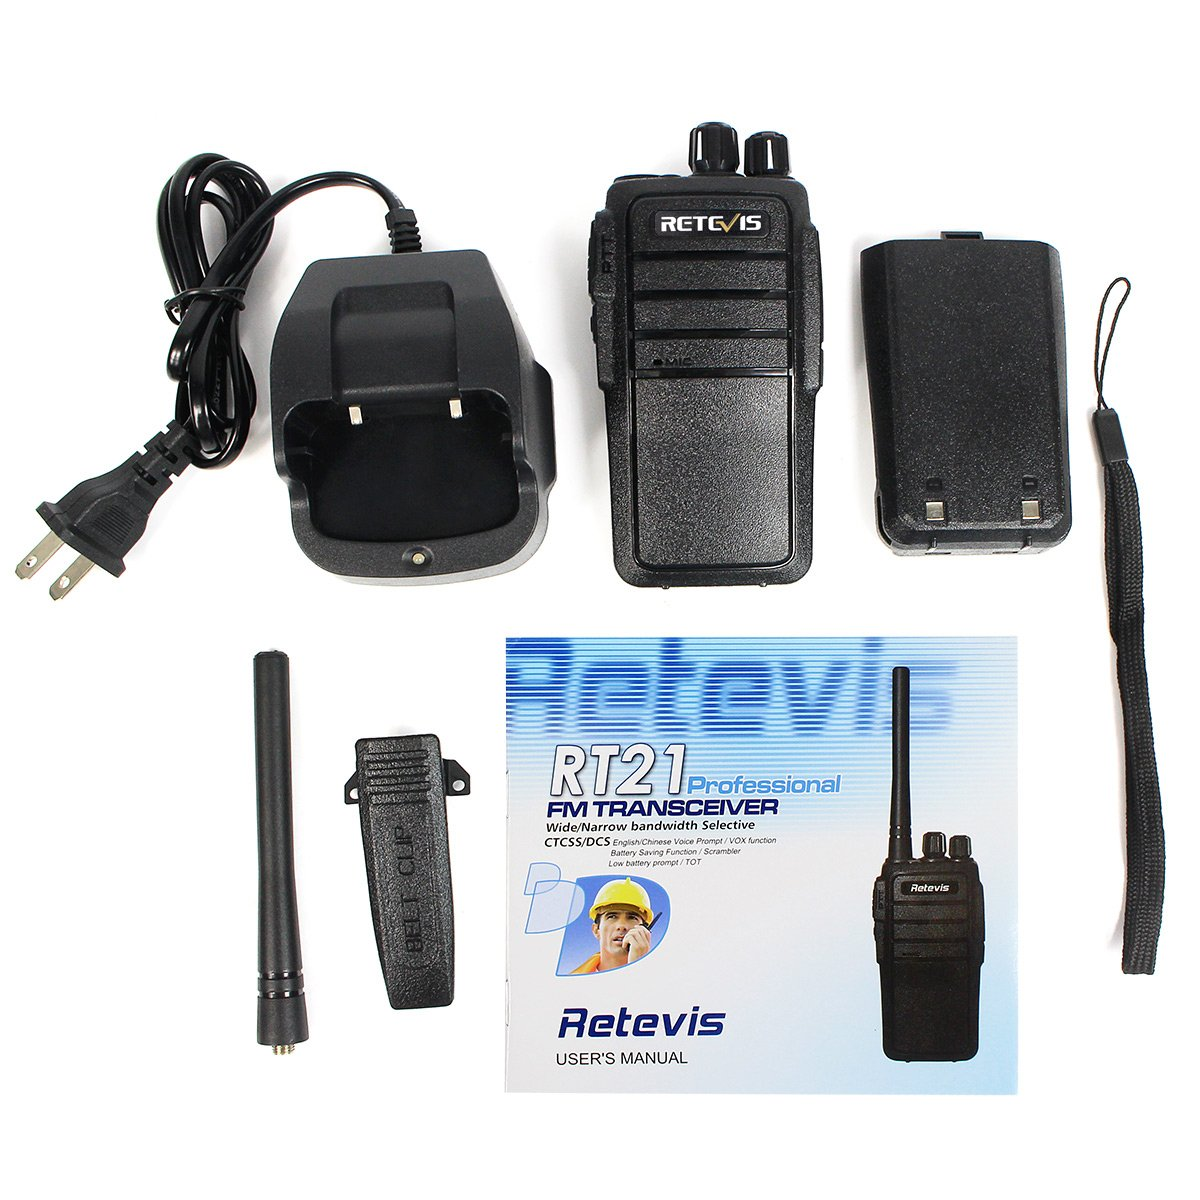 Retevis RT21 Walkie Talkies 16CH FRS Two Way Radio VOX Scrambler 2 Way Radios(5 Pack) with 2 Pin Covert Air Acoustic Earpiece (5 Pack) by Retevis (Image #7)